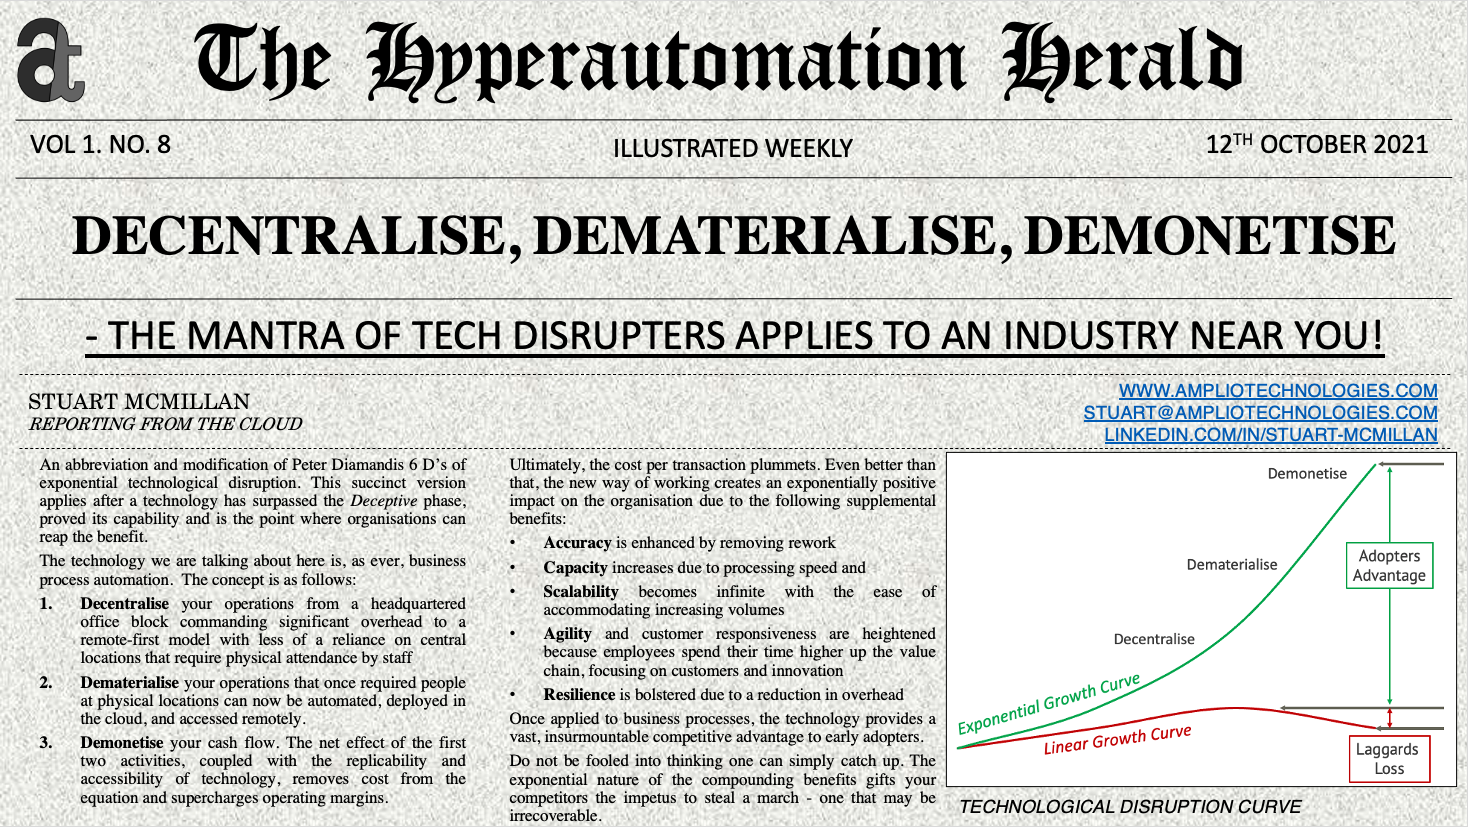 Hyperautomation Herald: Decentralise, Dematerialise, Demonetise - The Mantra of tech Disrupters Applies to an Industry Near You!